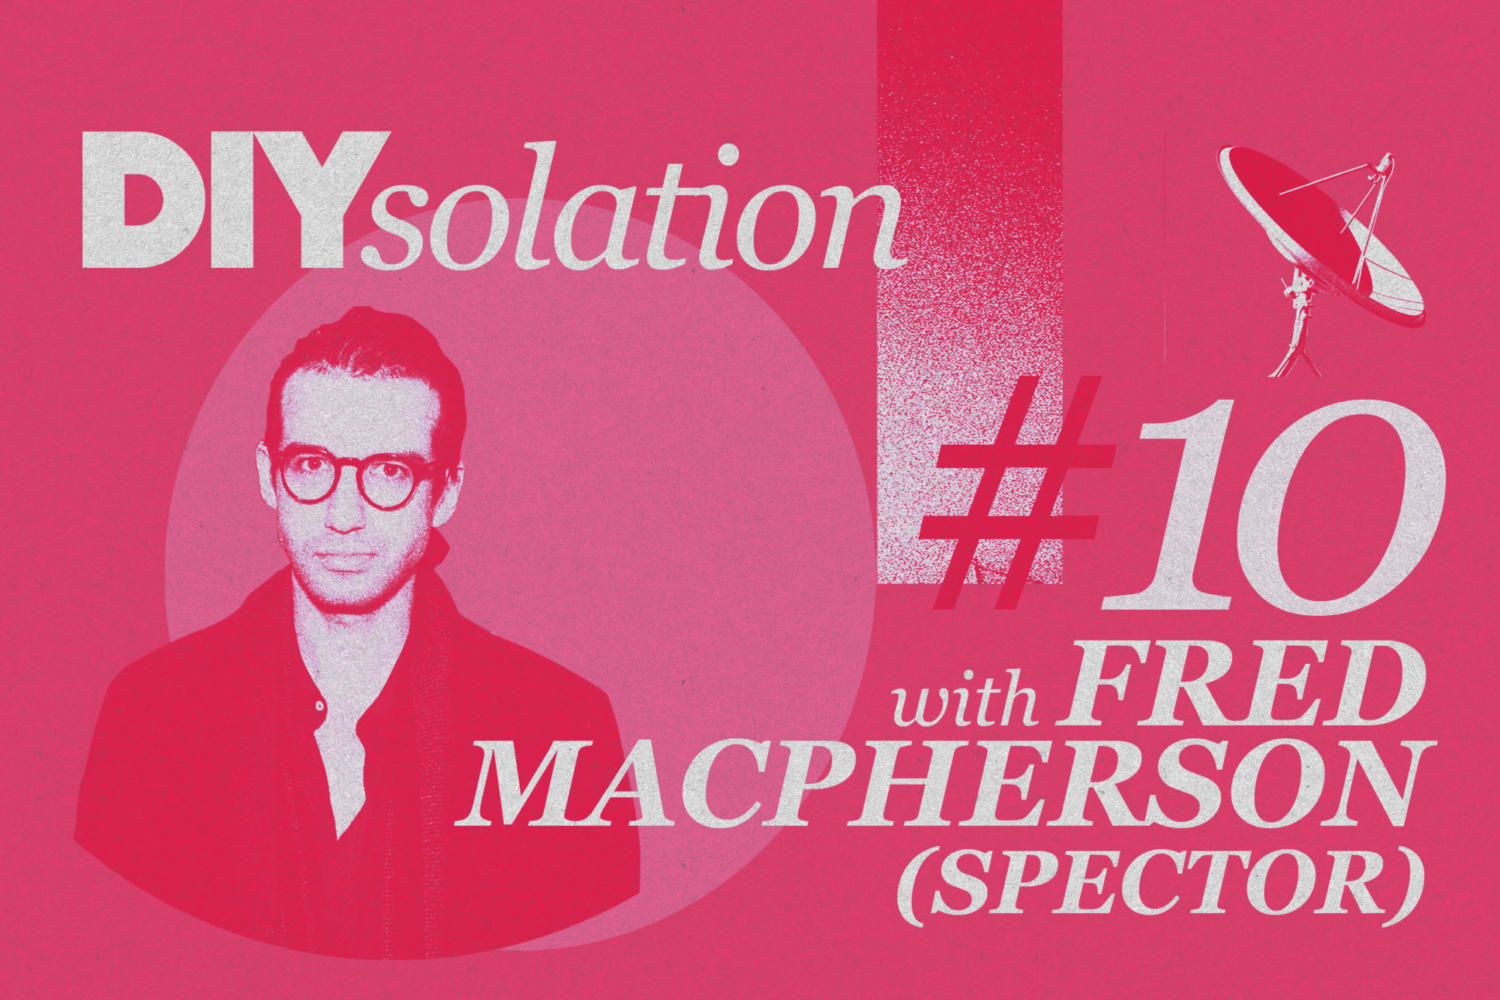 DIYsolation: #10 with Fred Macpherson